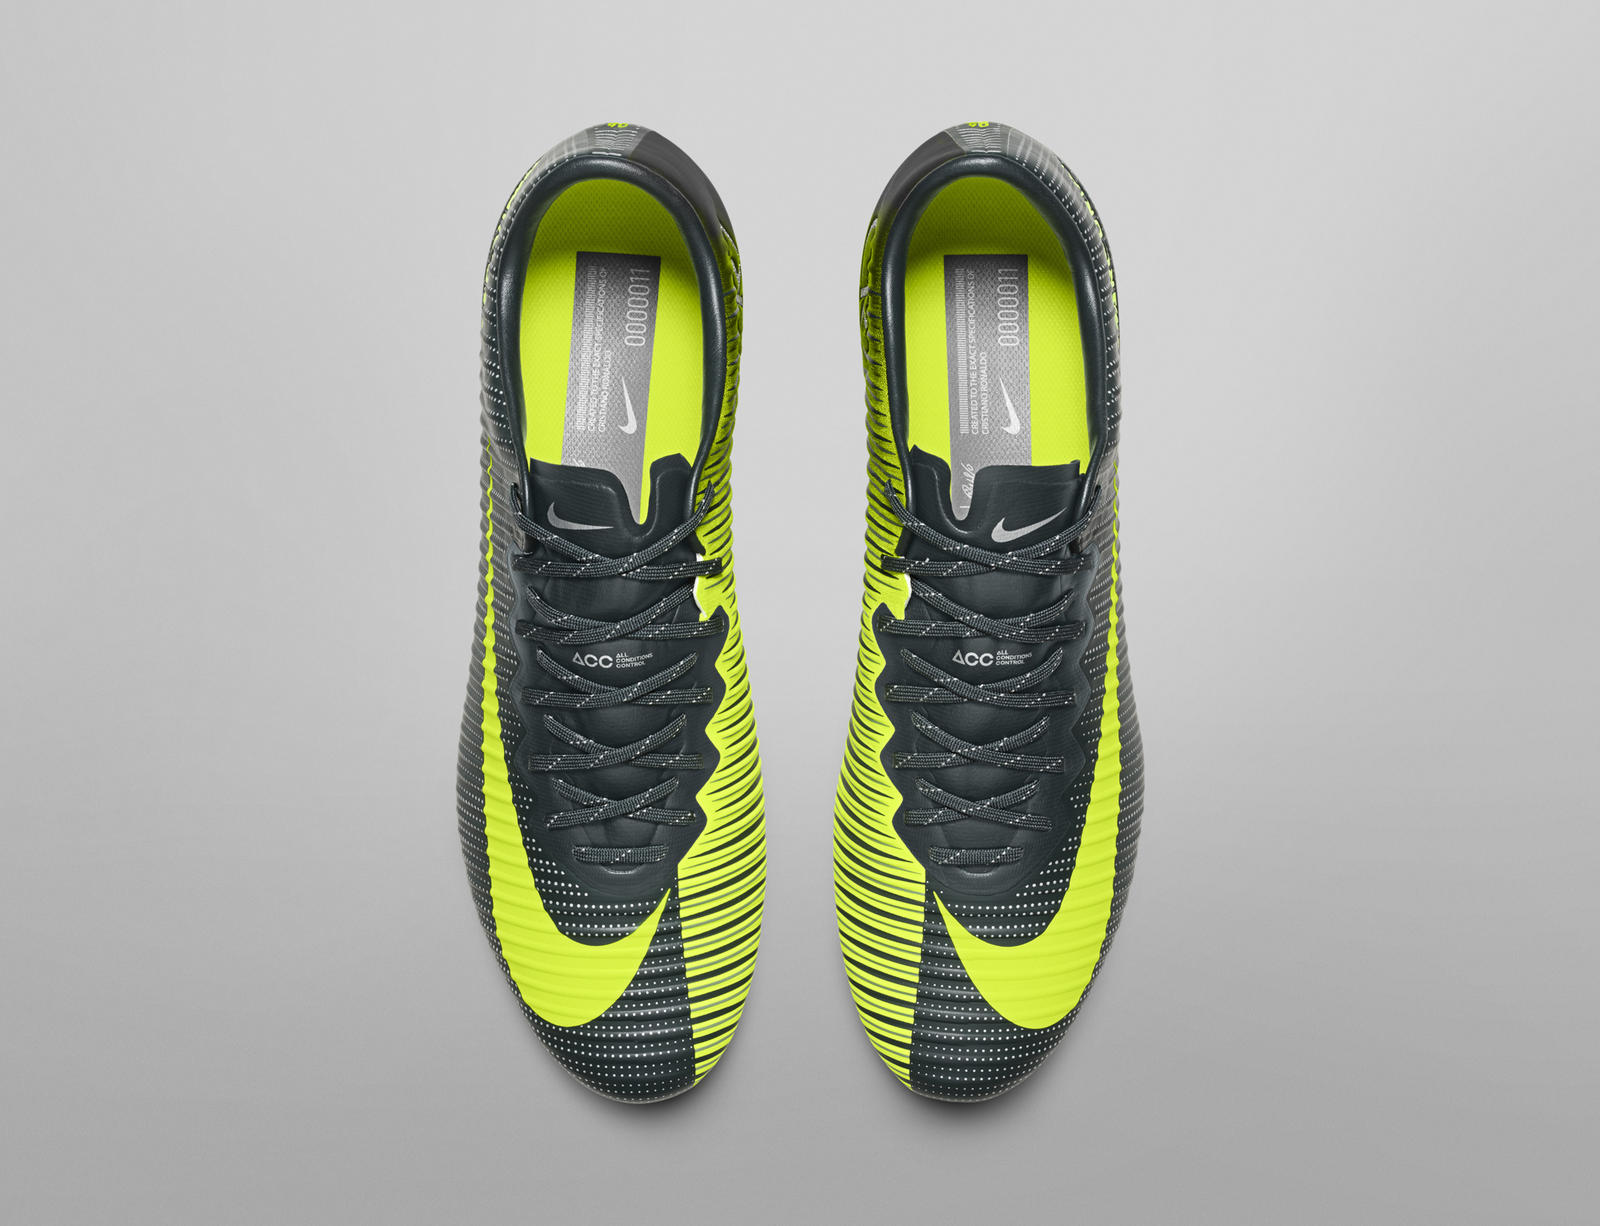 c576166591 ... free shipping chuteira nike mercurial victory 3 cr7 fg infantil society  trainers outlet. 2018 08